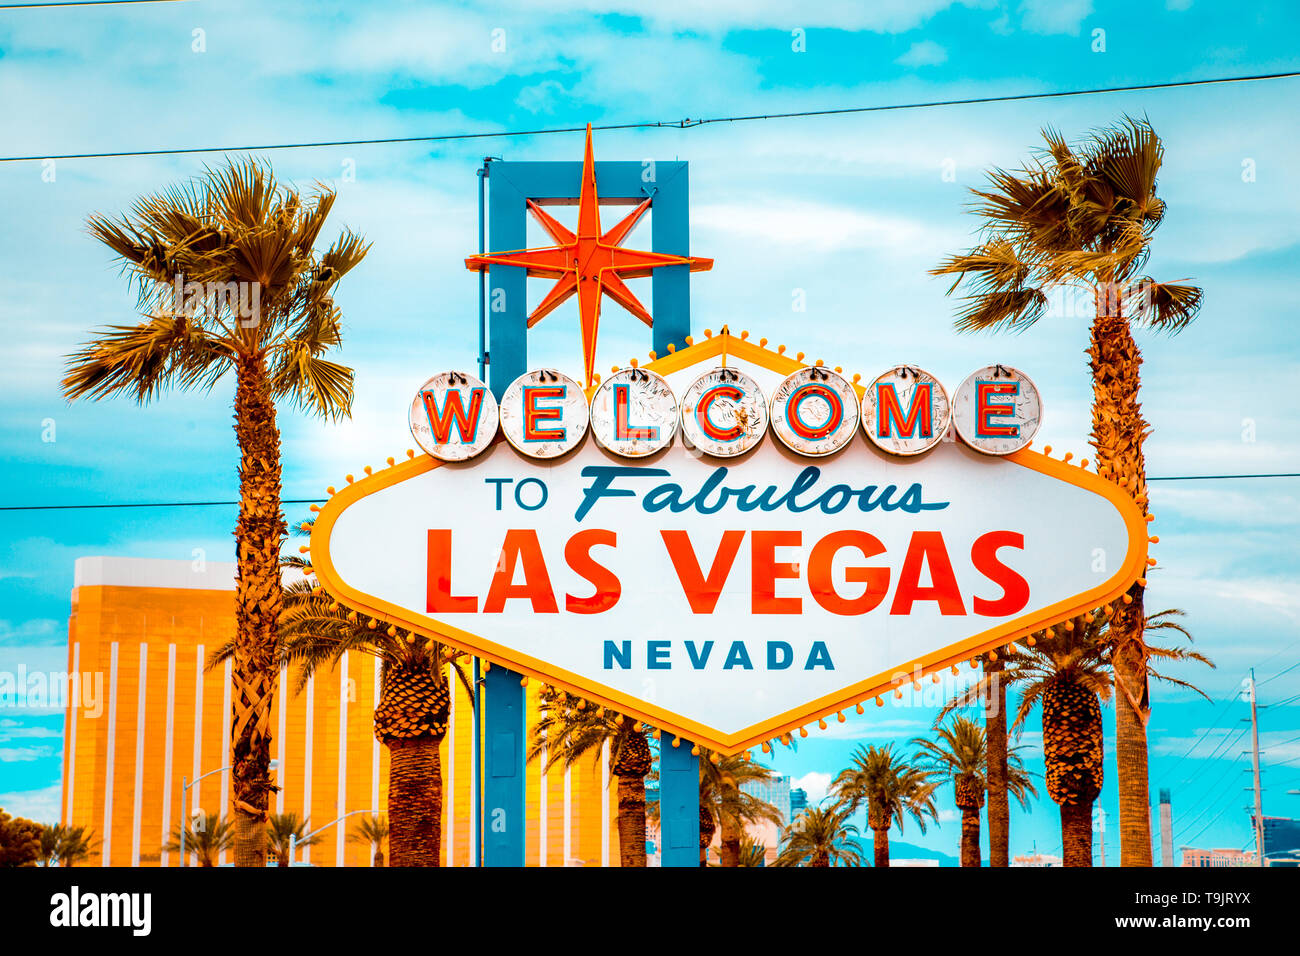 Classic view of Welcome to Fabulous Las Vegas sign at the south end of world famous Las Vegas strip on a beautiful sunny day with blue sky and clouds Stock Photo